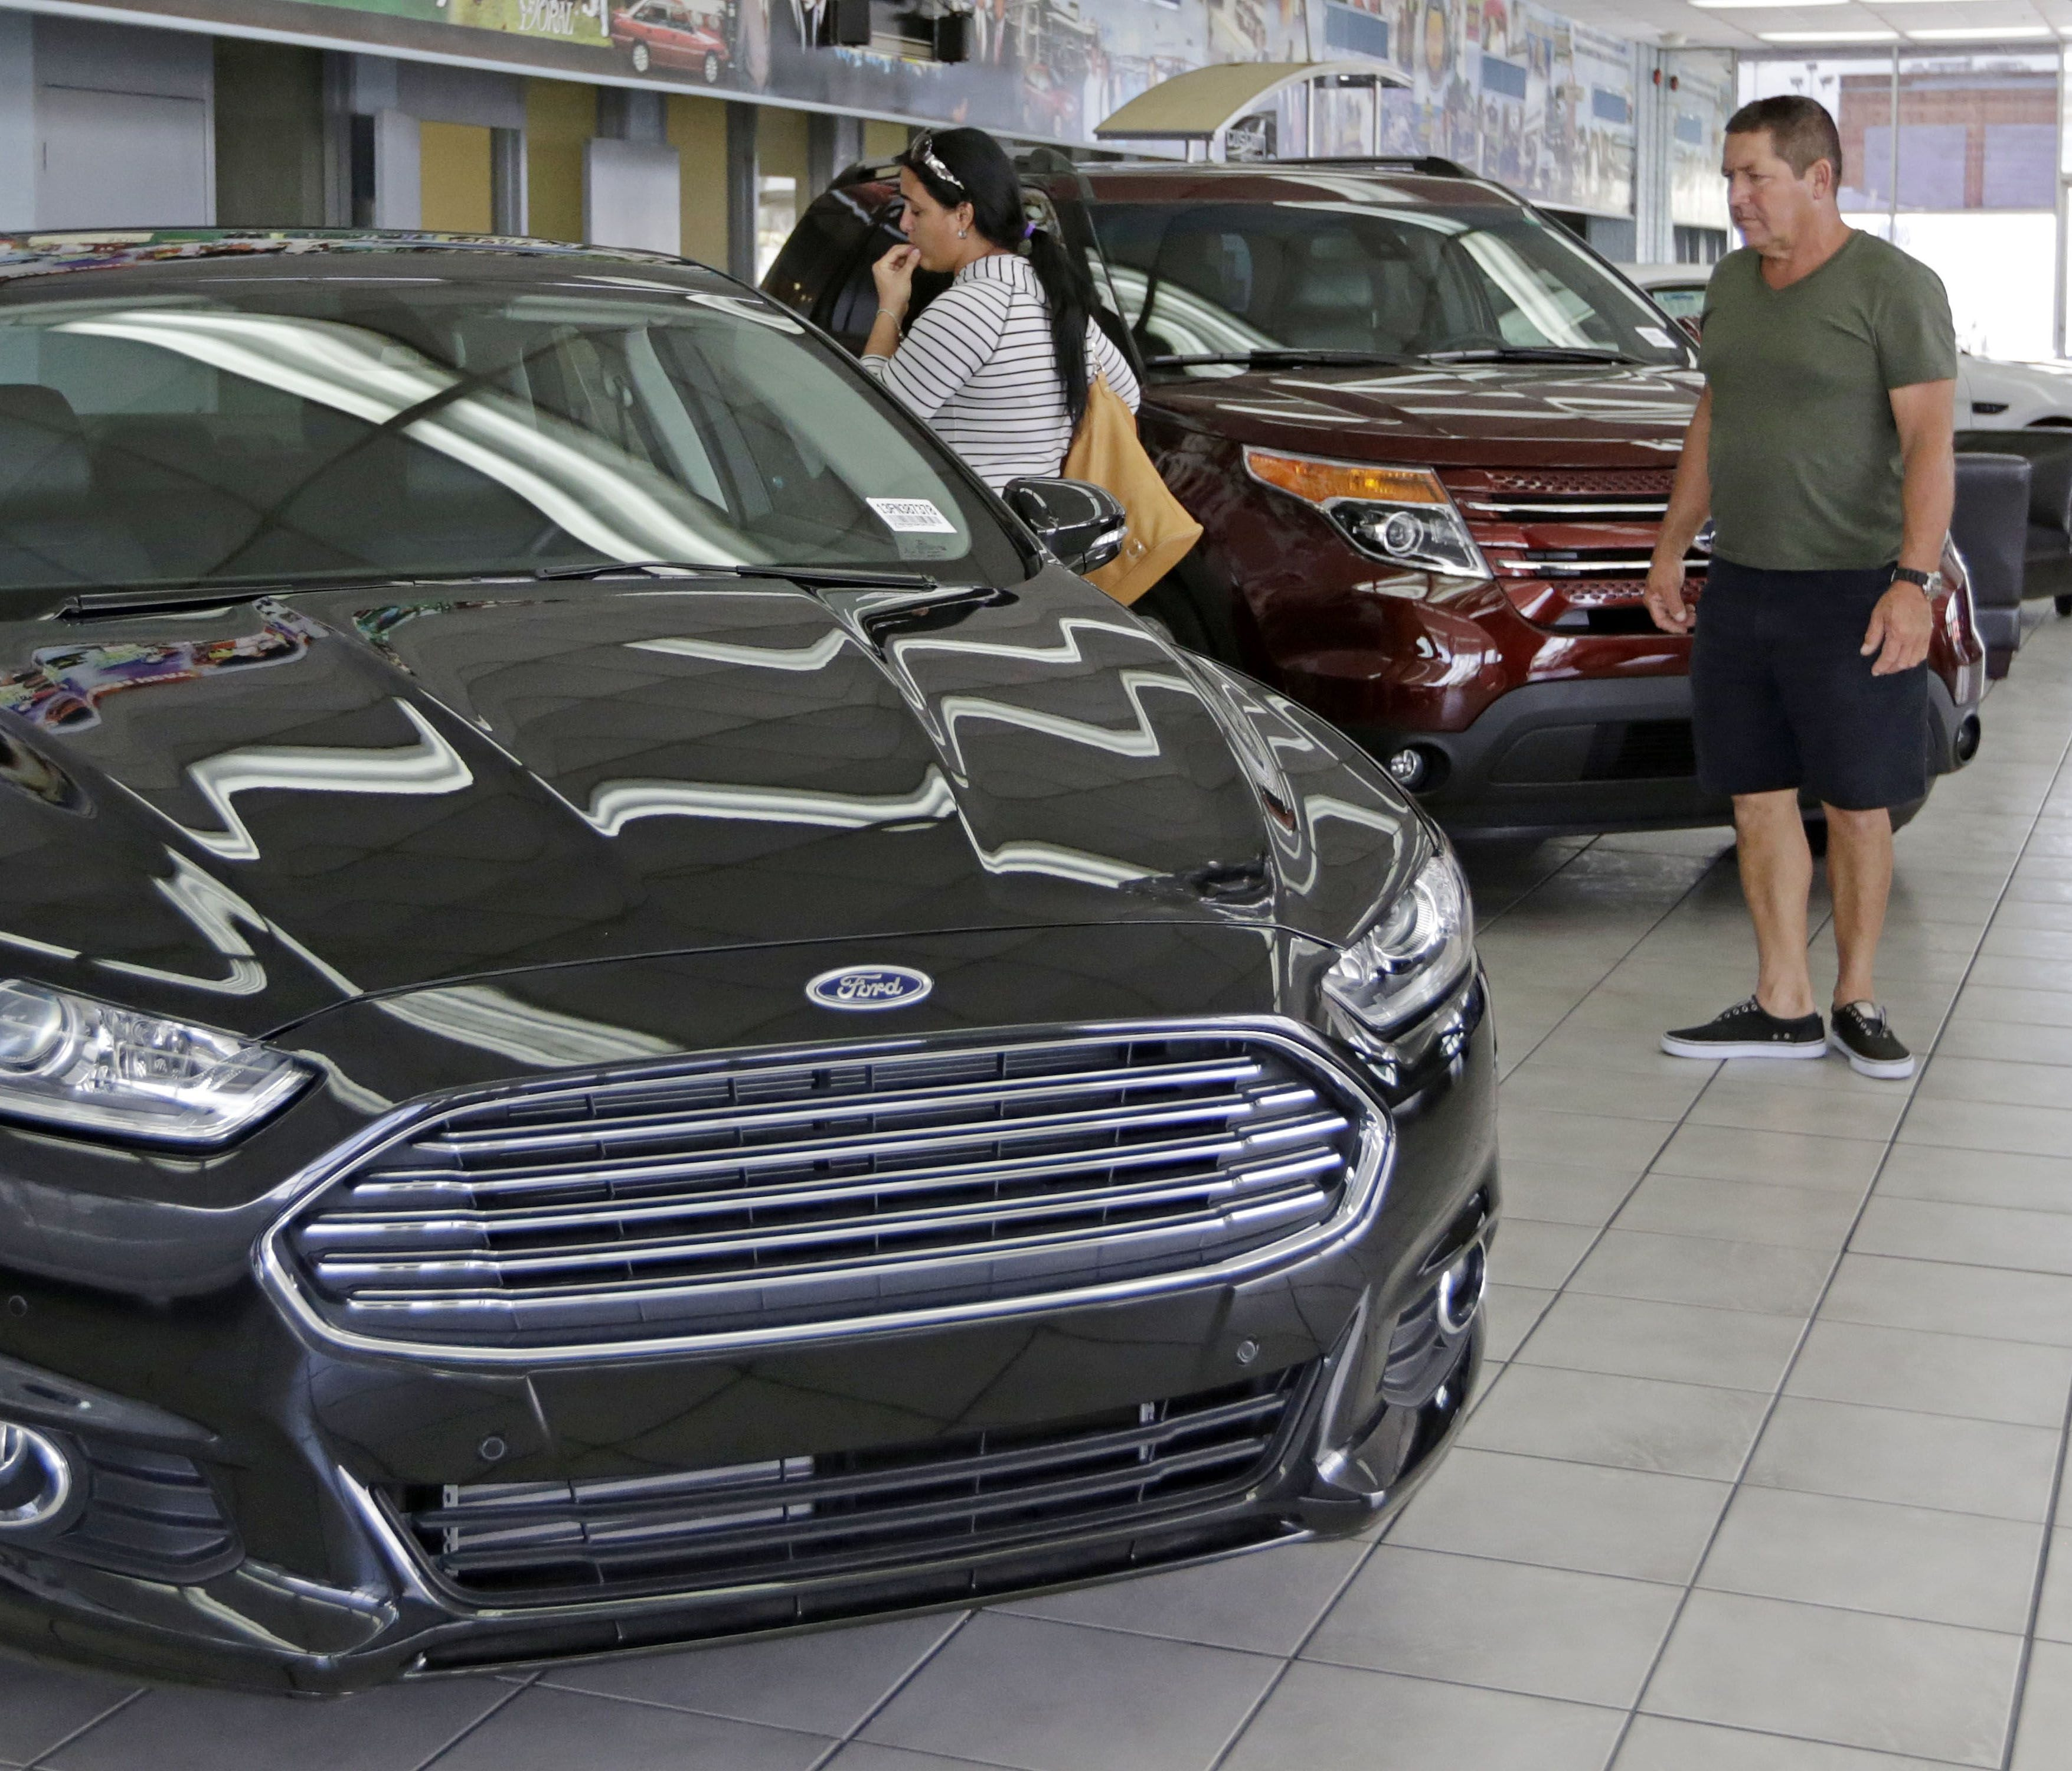 Orestes Perez and his niece Yanuska Perez look at a 2013 Ford Fusion SE at a dealership in Hialeah, Fla. Aug. 21, 2014.